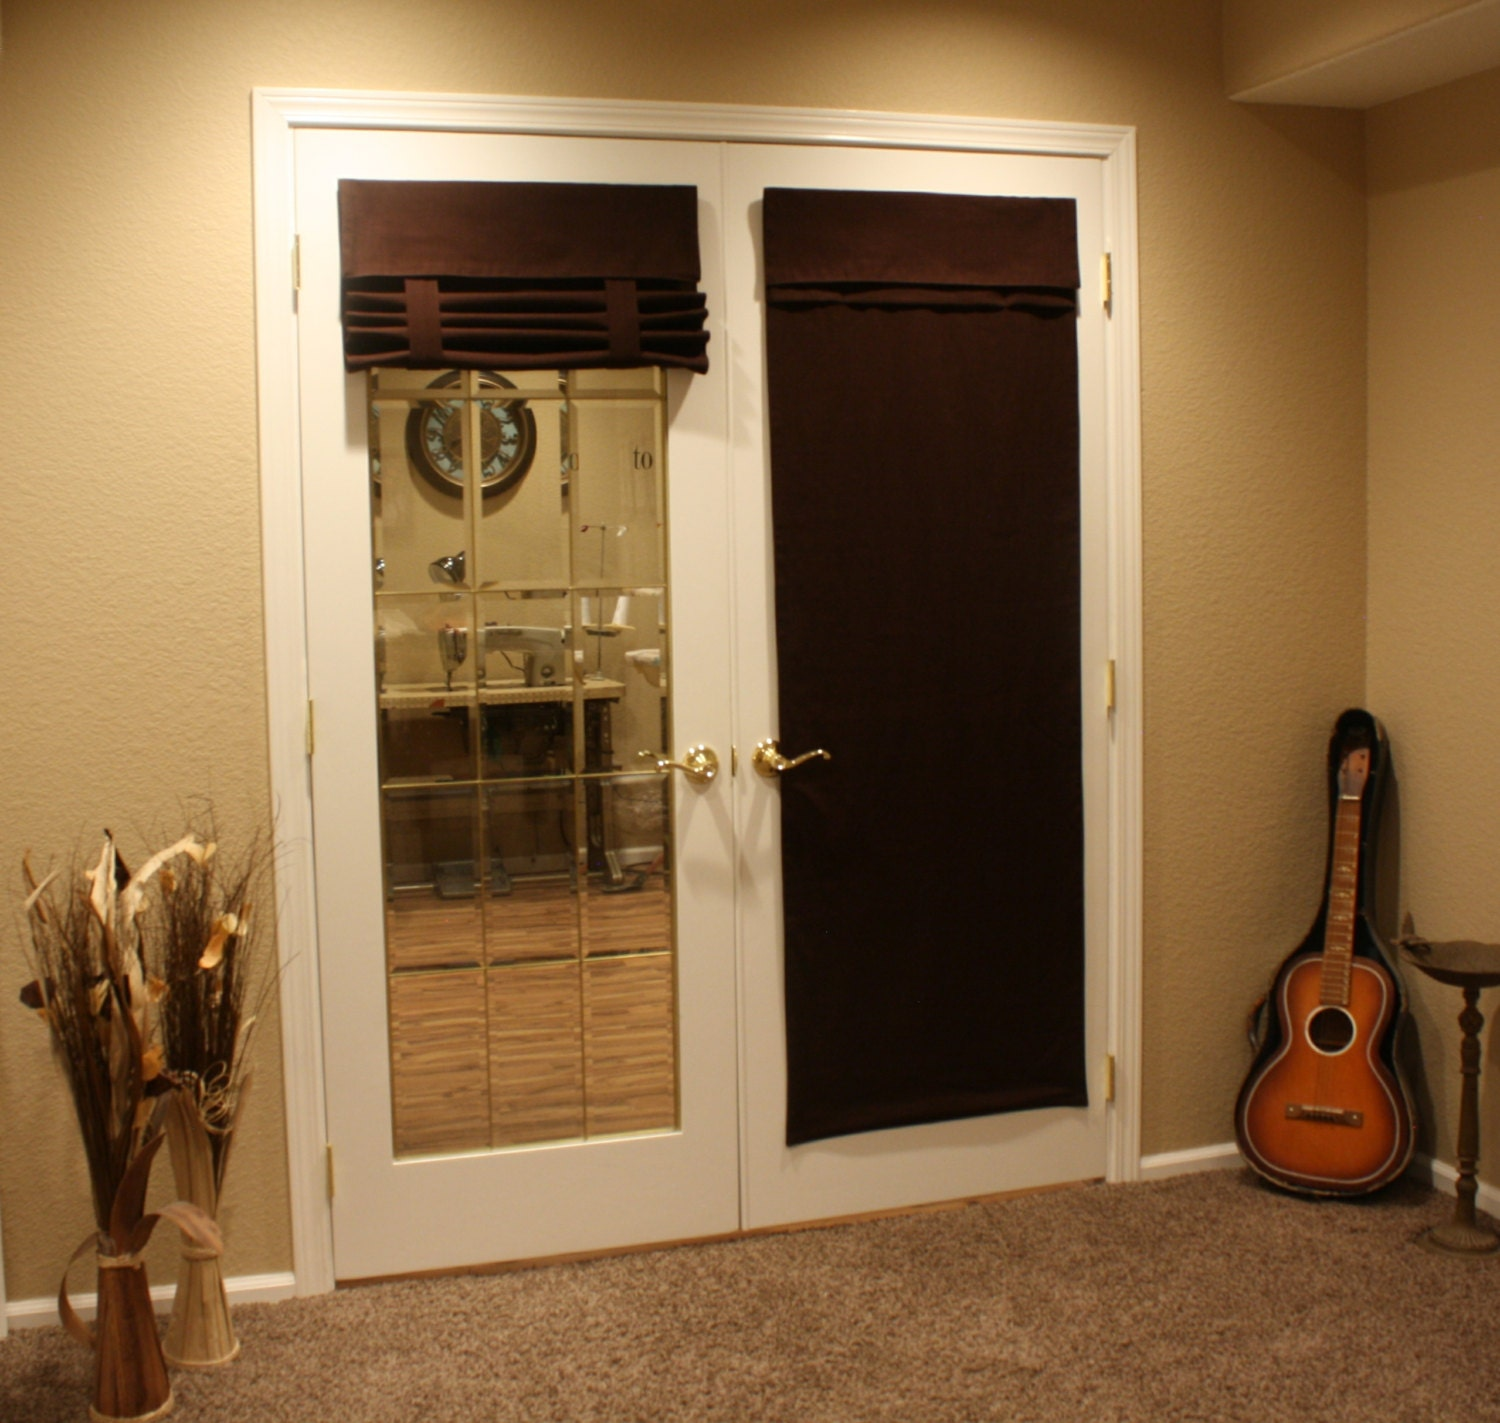 Dark Curtains For French Doors